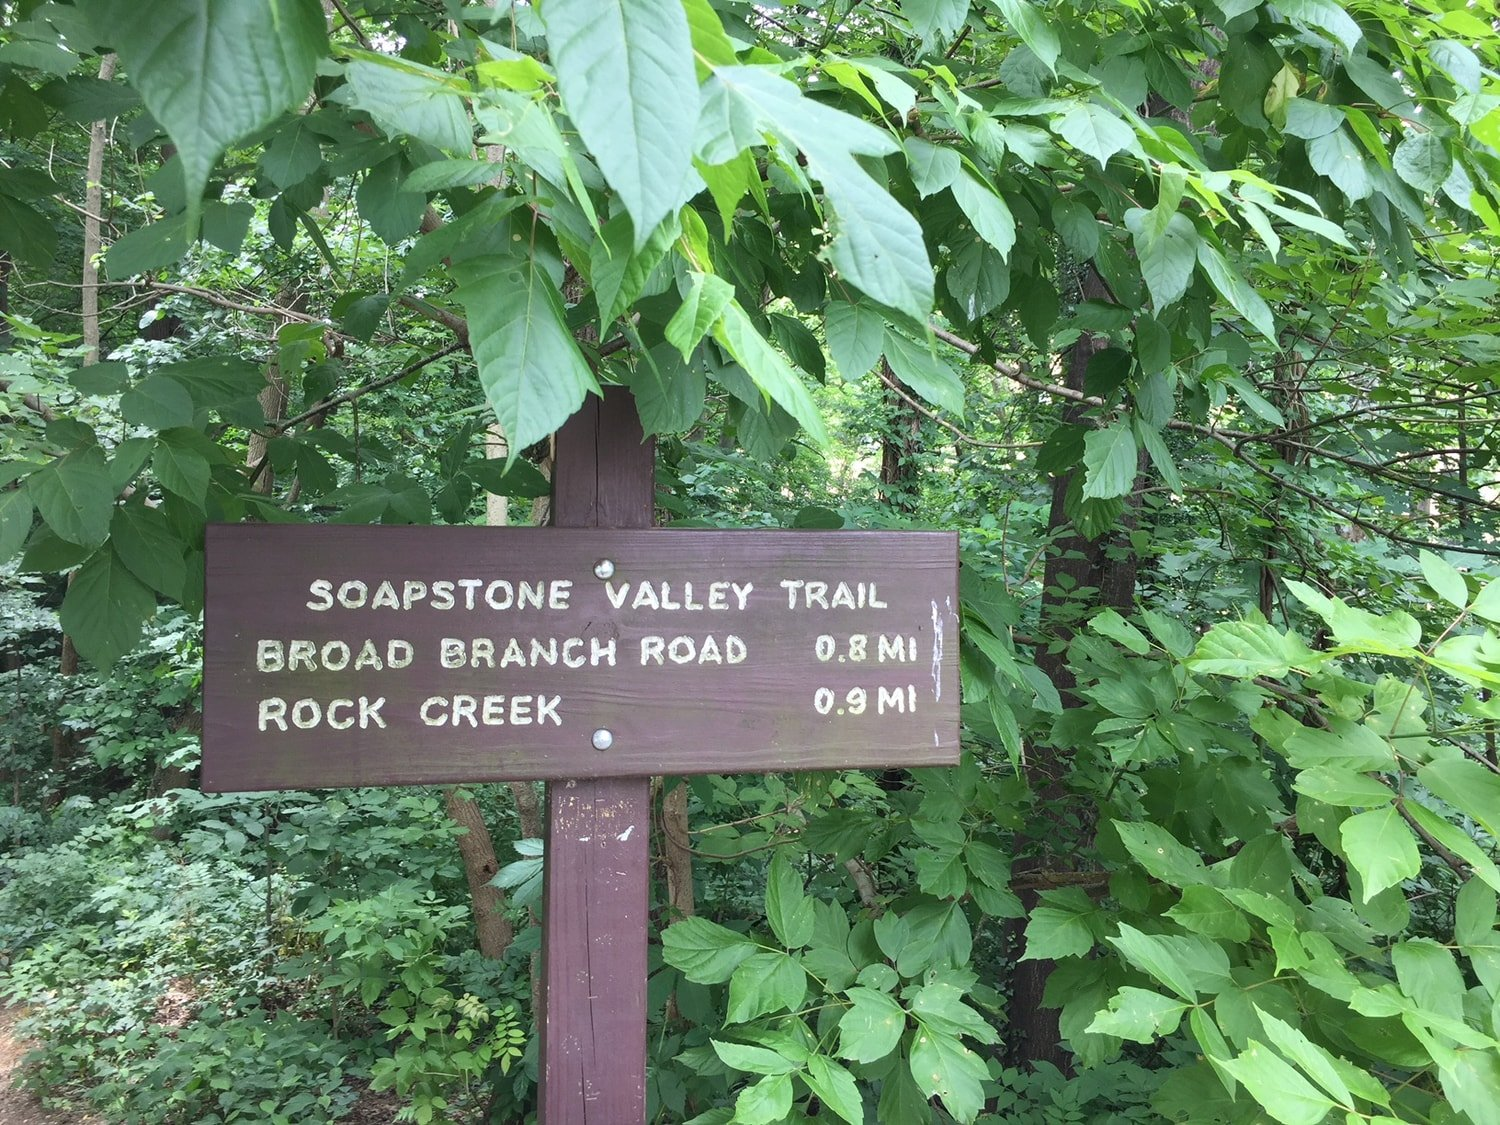 Soapstone Valley Trail Sign - Van Ness - Washington, DC